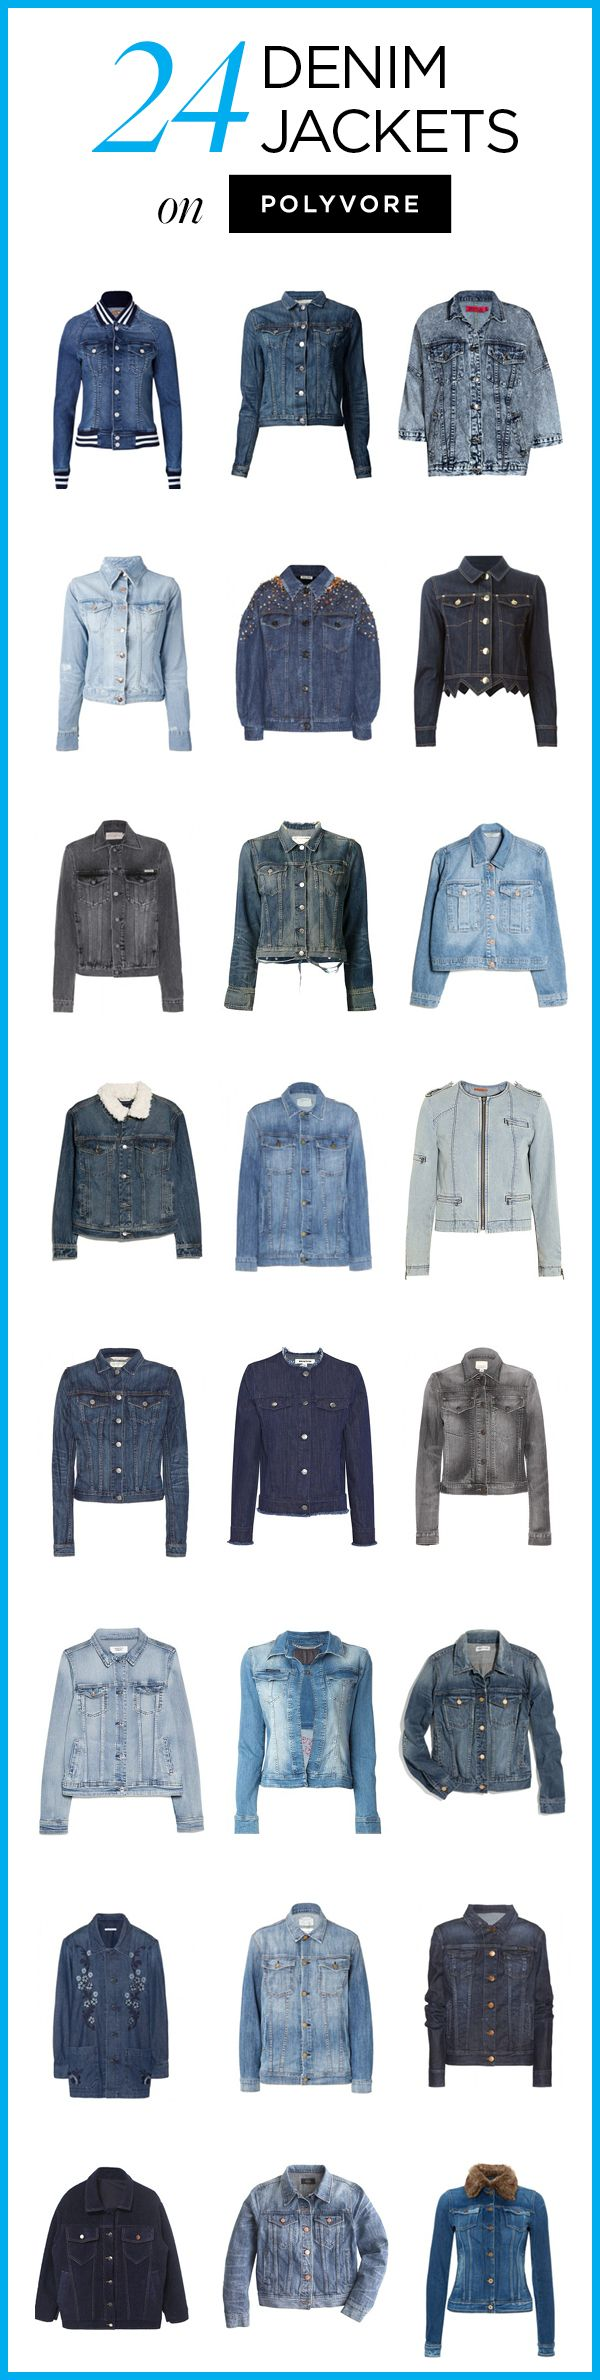 24 Denim Jackets on Polyvore! Shop all denim outerwear styles to find a look you love: http://polyv.re/DenimJackets